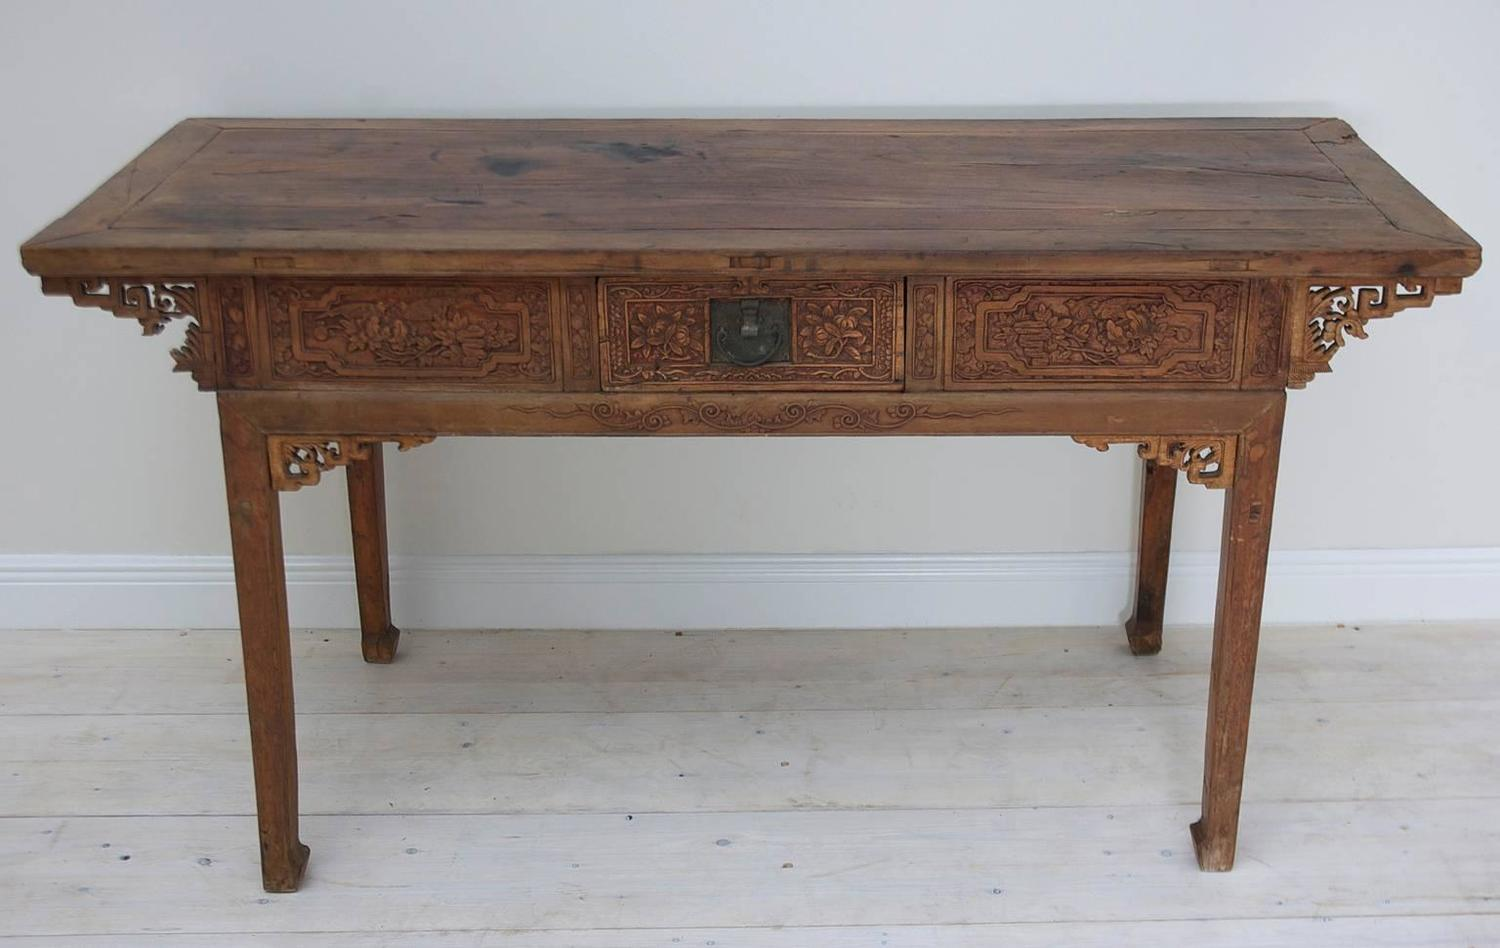 Genial Antique Chinese Altar Table With Fine Carvings For Sale At 1stdibs